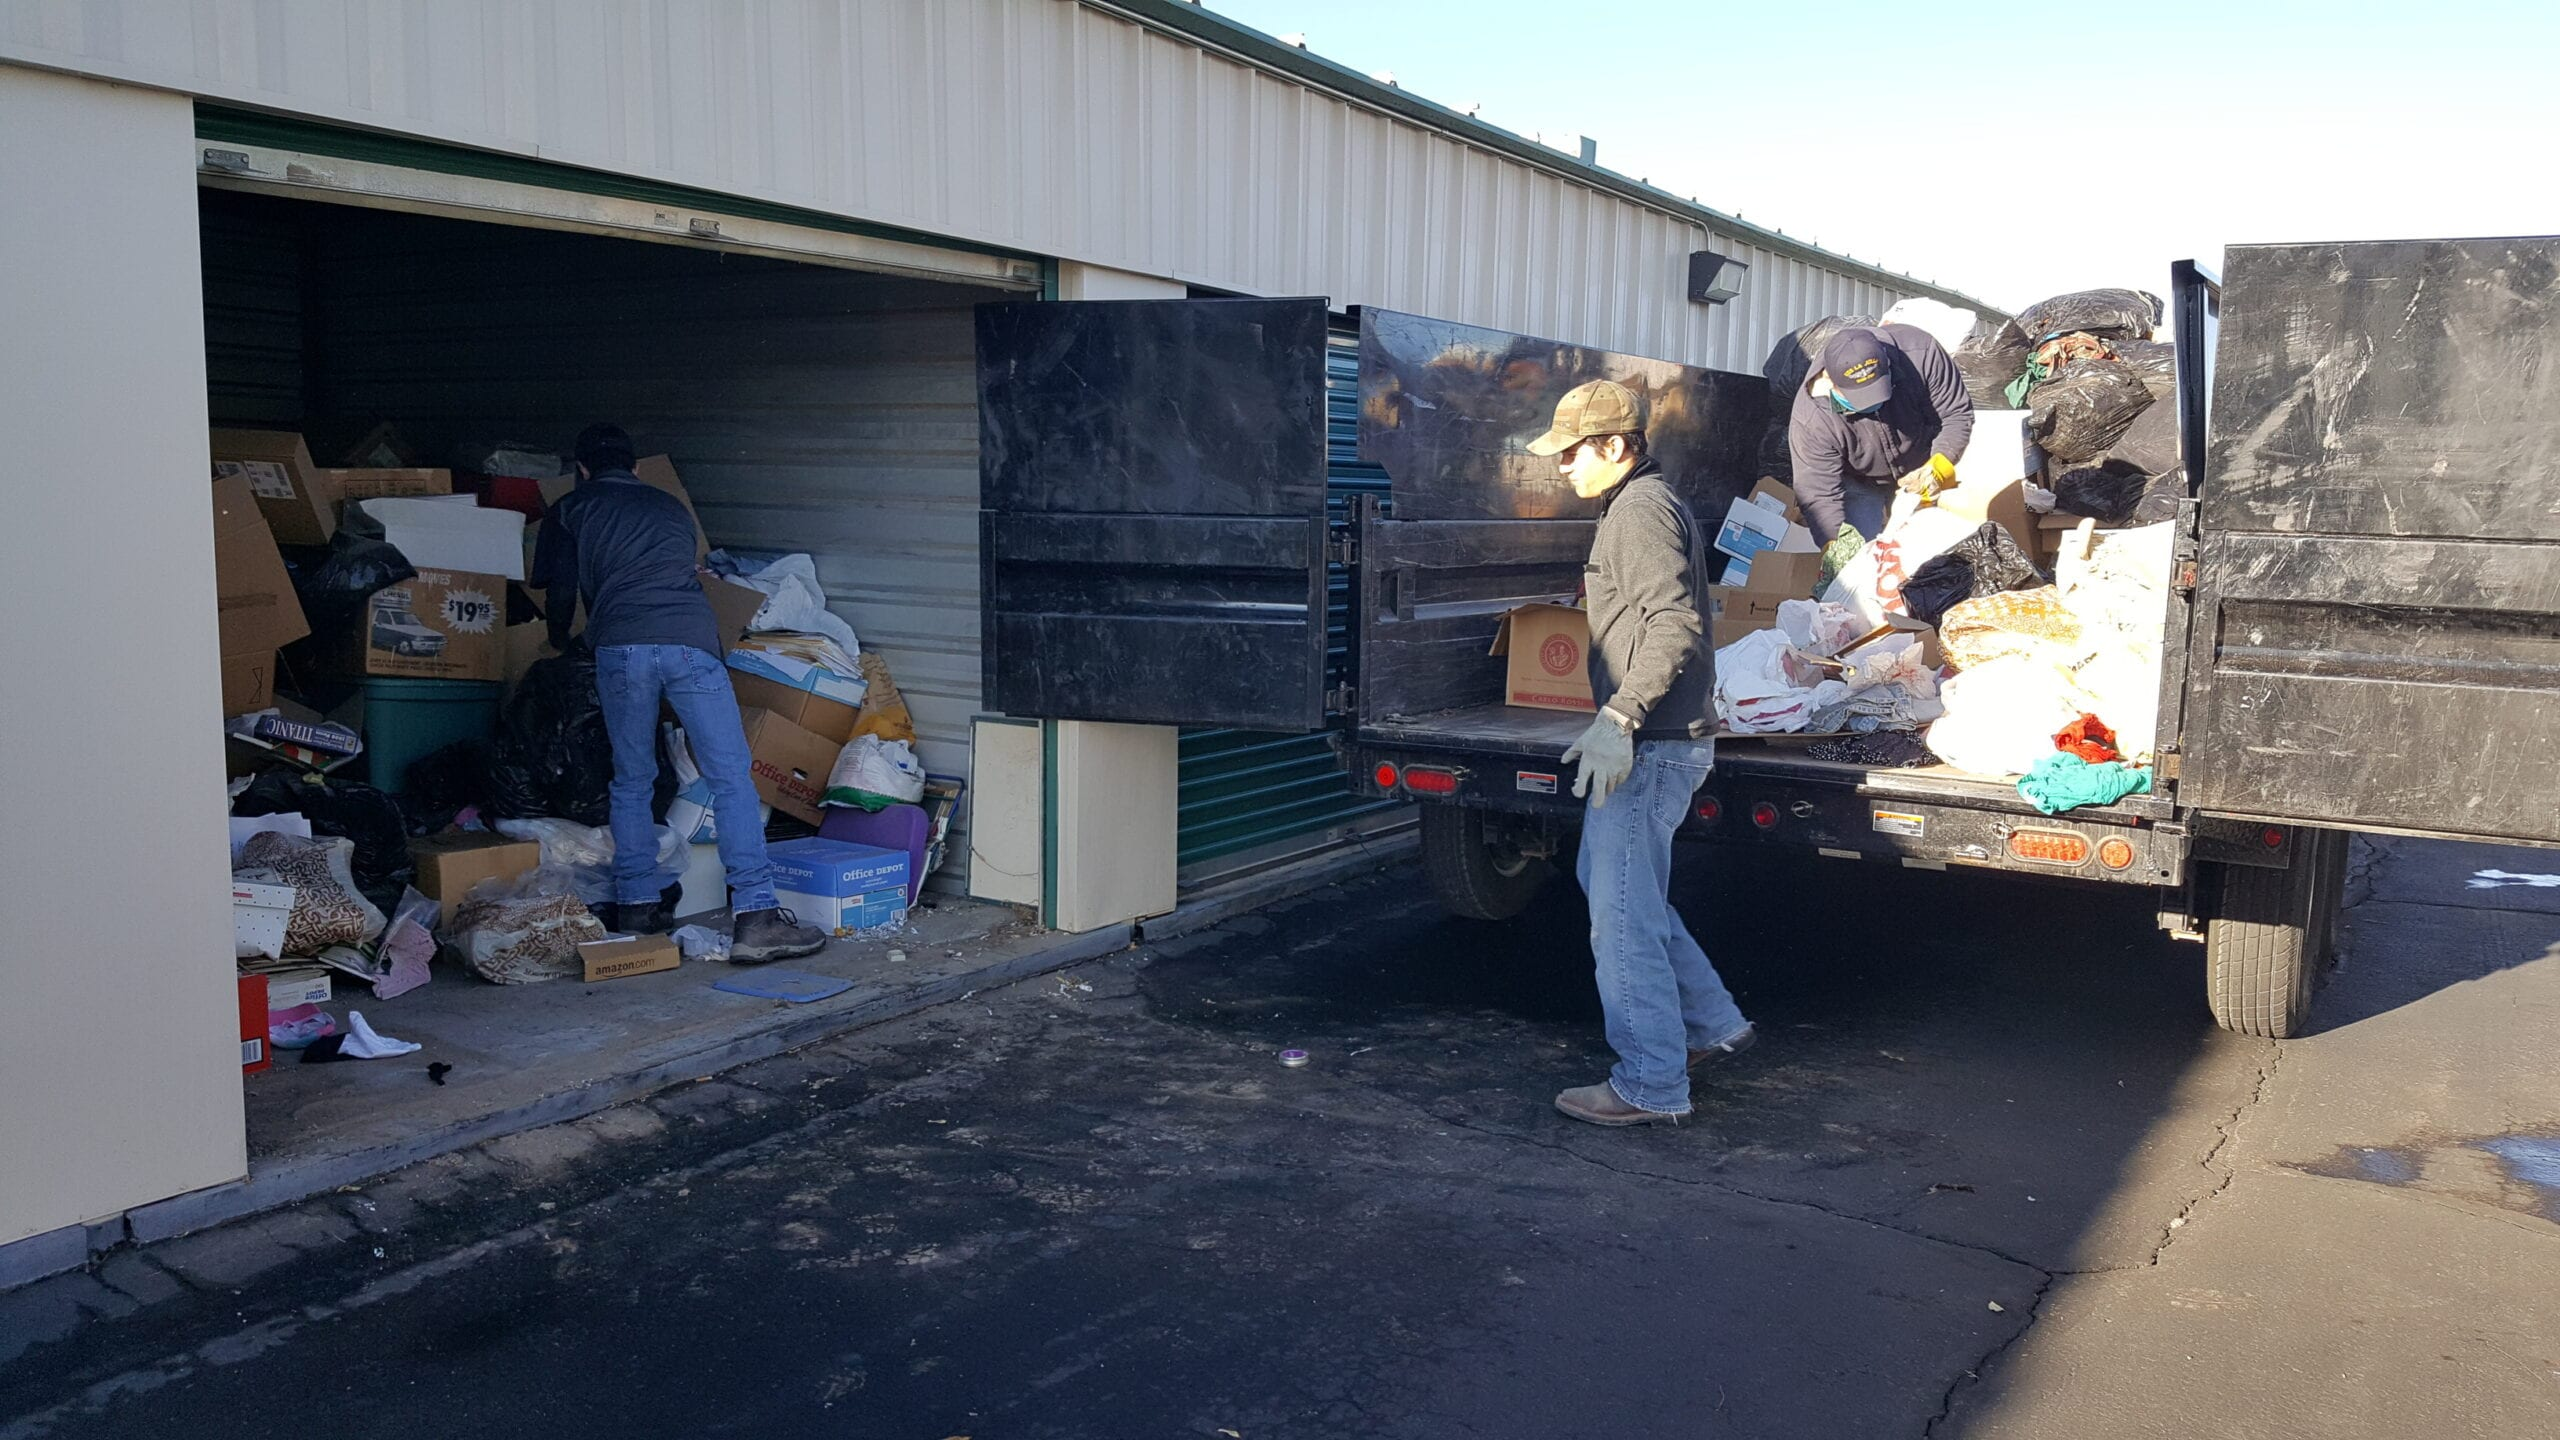 Employees clearing out a storage unit with hoarded excess garbage